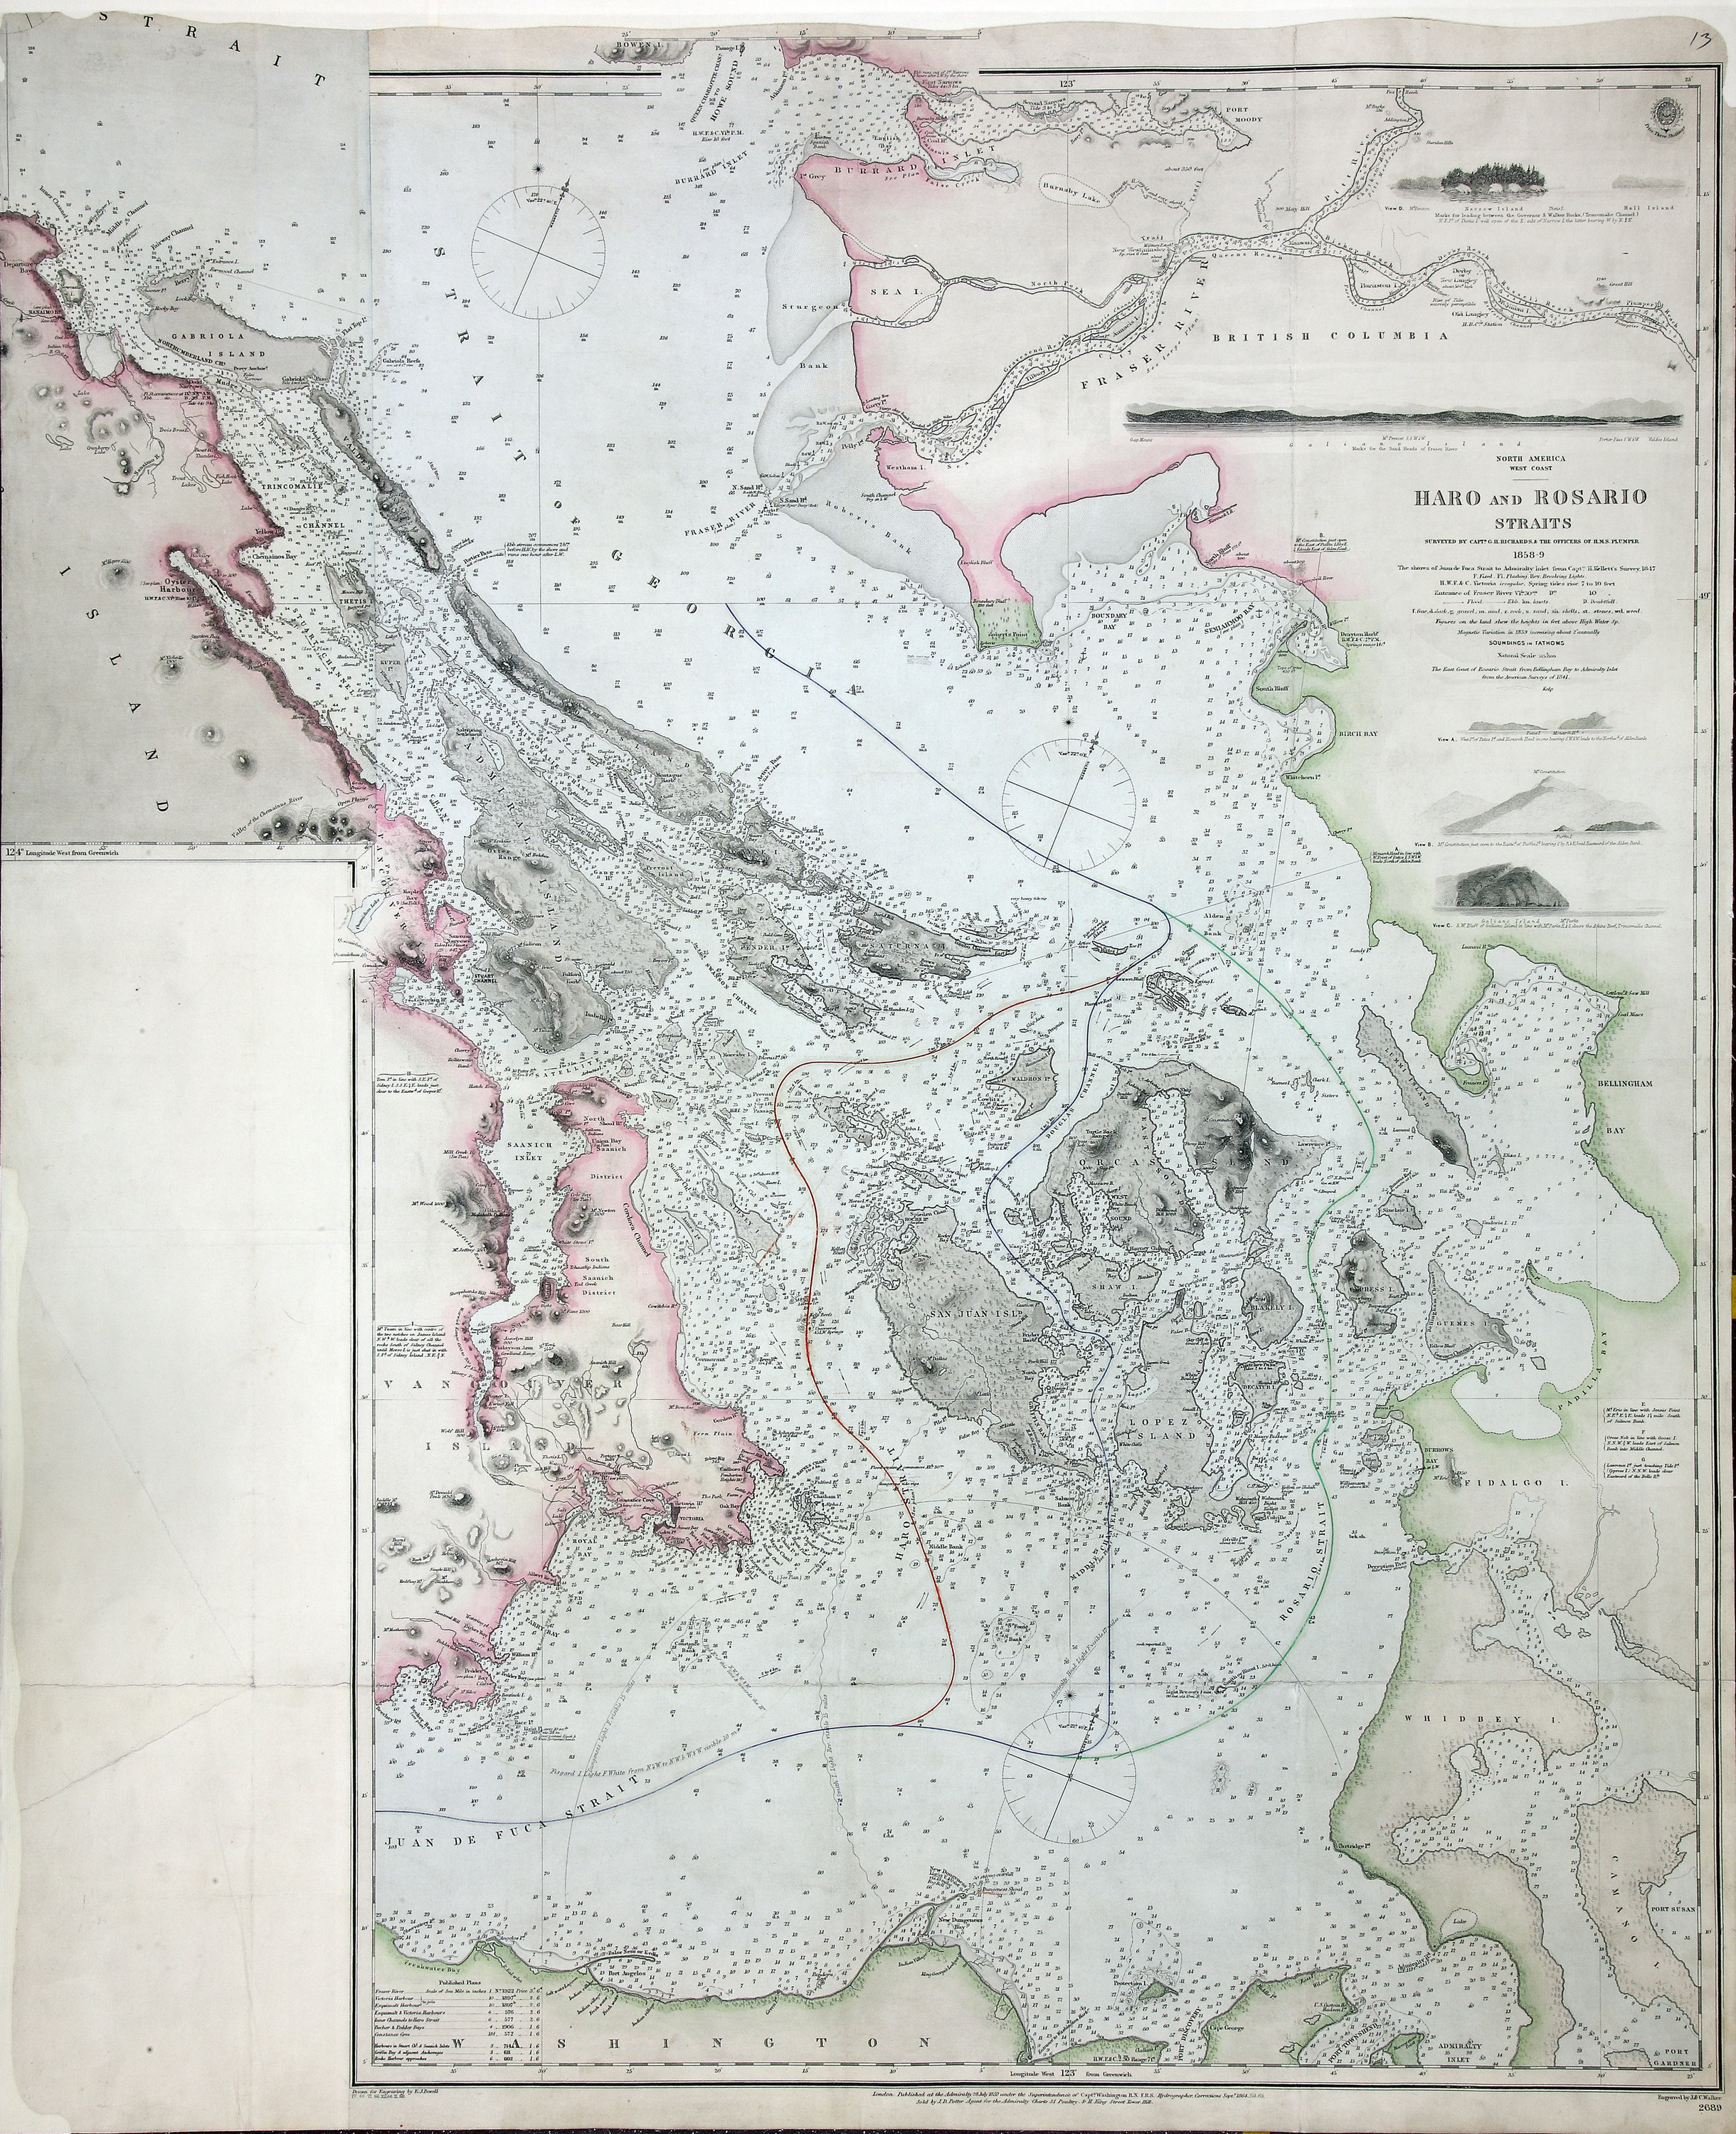 San Juan Water Boundary (Arbitration) : list of maps sent to Admiral Prevost at Berlin on the 12th June 1872 [map 38]